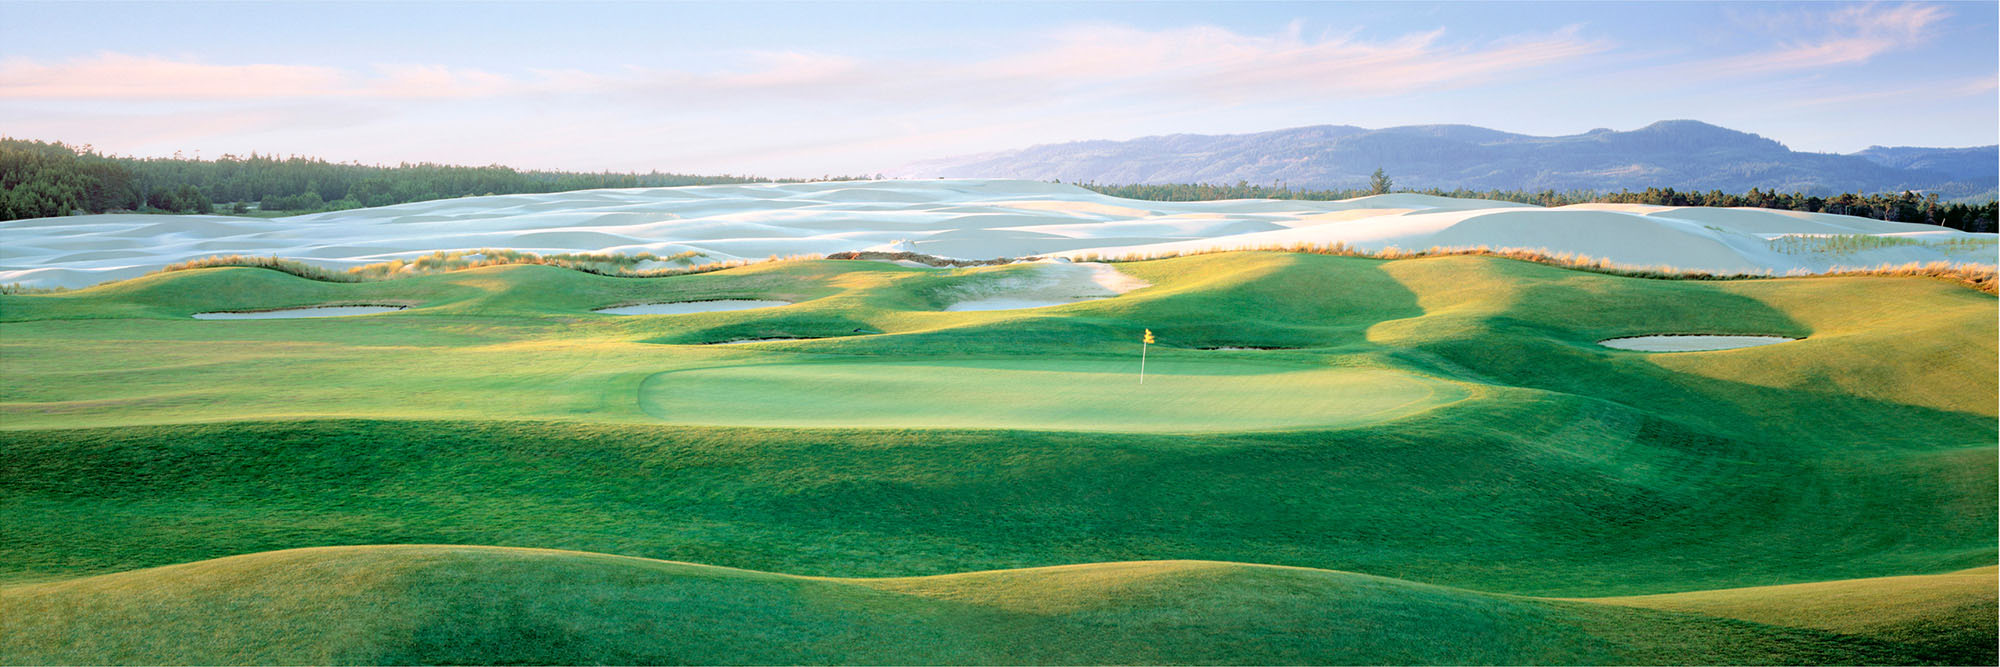 Golf Course Image - Sandpines No. 7